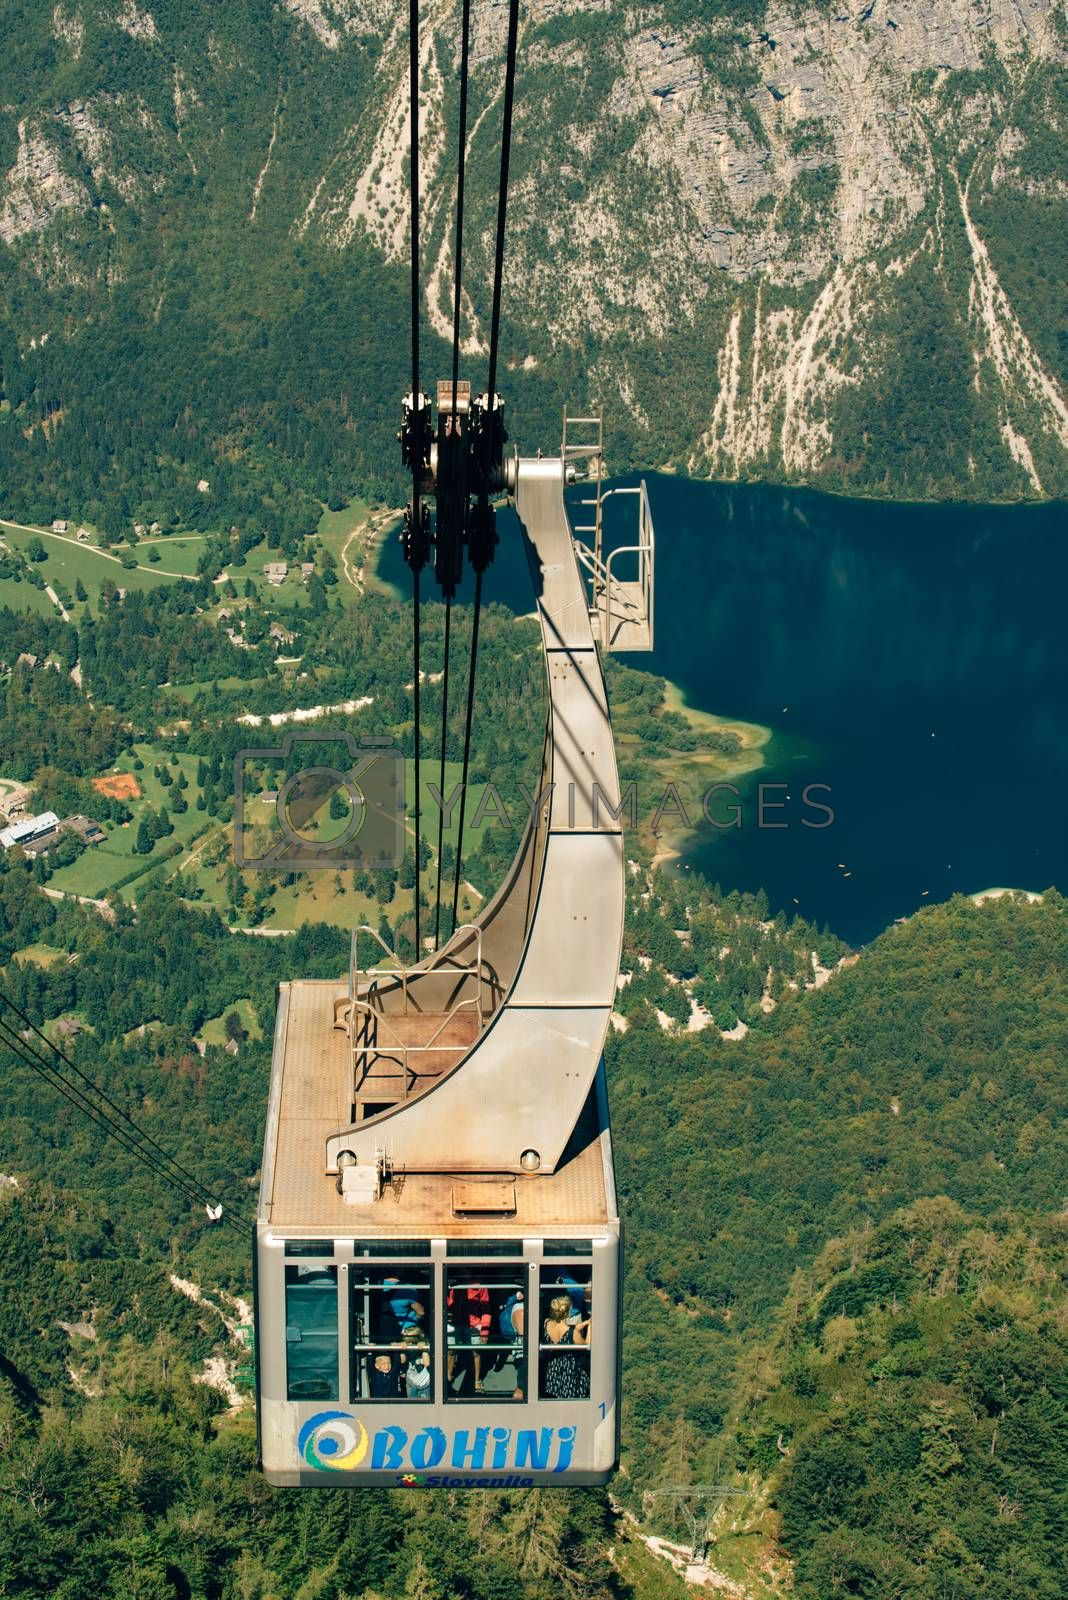 Bohinj lake Vogel cable car by stevanovicigor